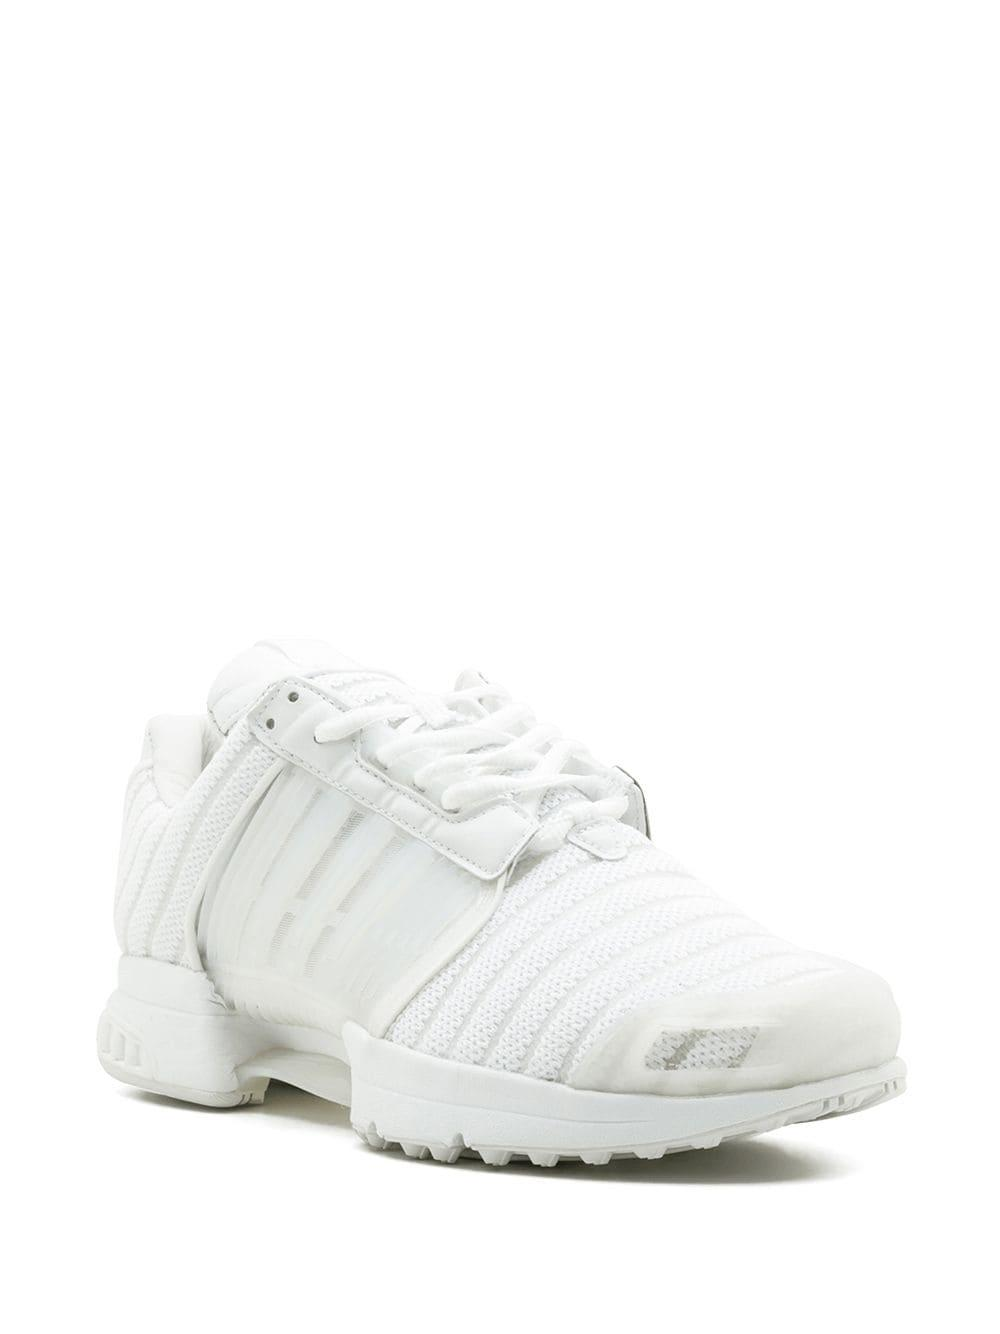 Climacool 1 S.e 'sneaker Exchange' Shoes - Size 13